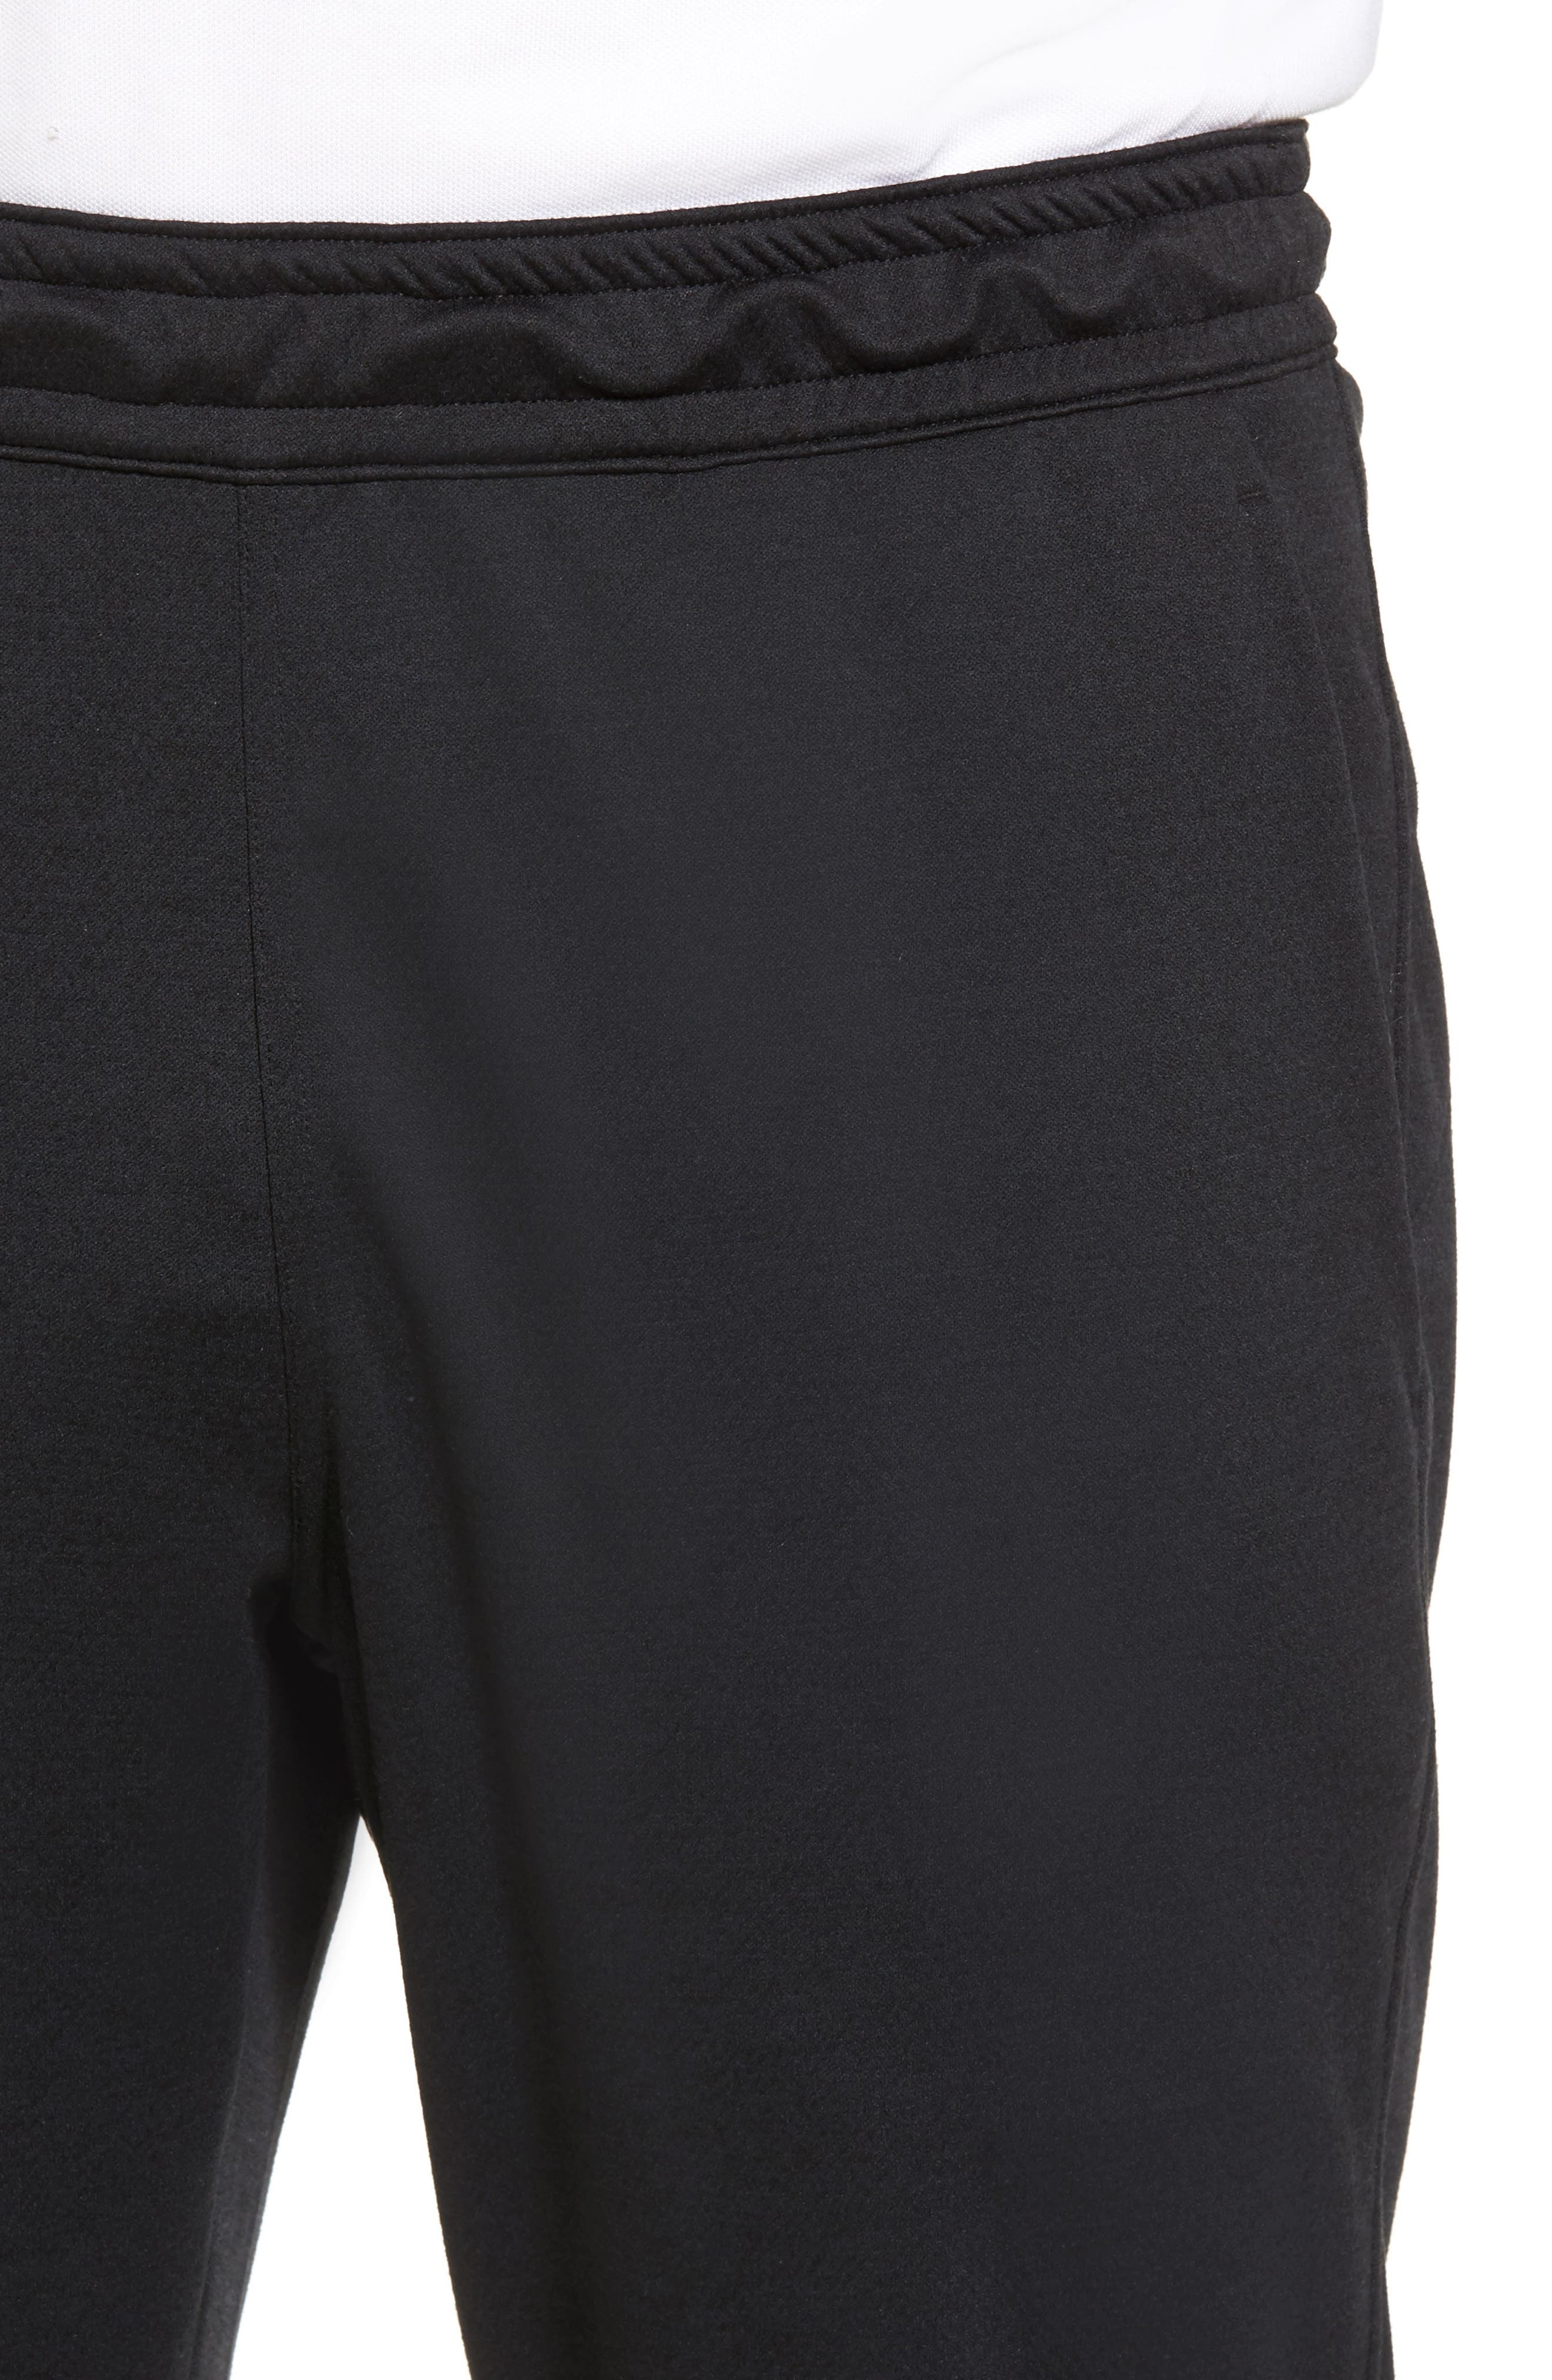 Cropped Jogger Pants,                             Alternate thumbnail 4, color,                             Black